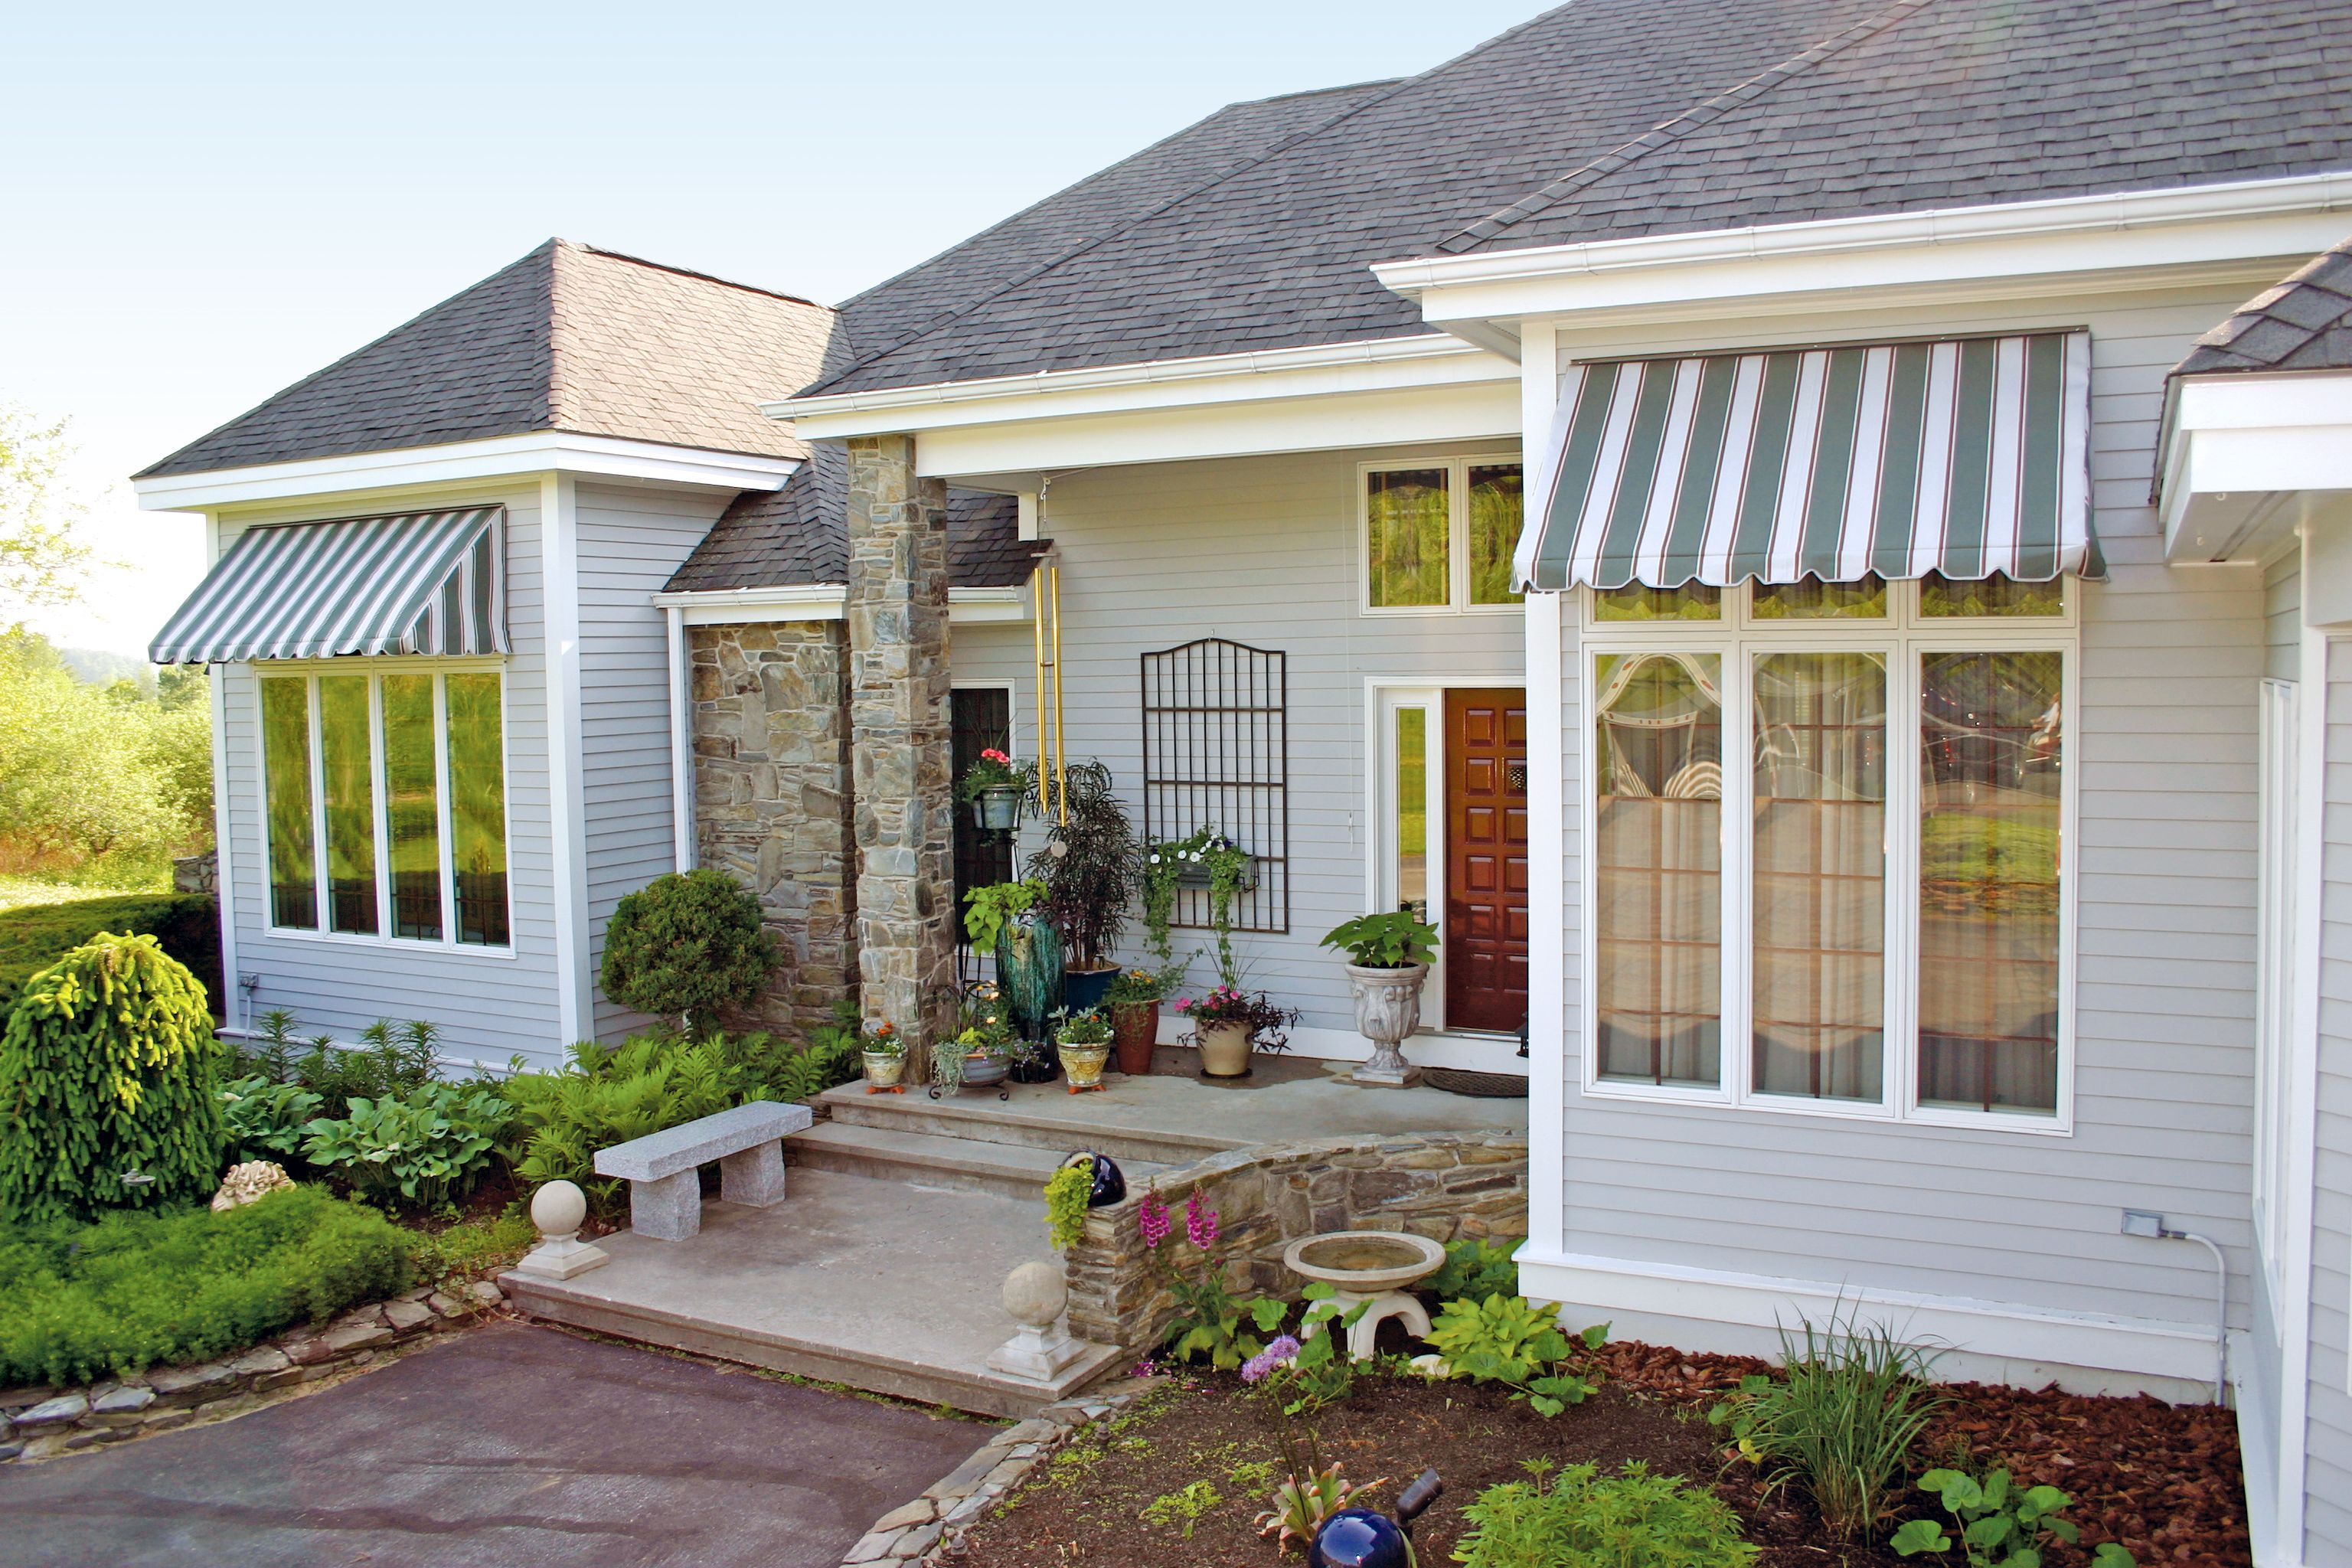 reno munz door pinterest awnings of front portico nuimage awning attractive construction fresh